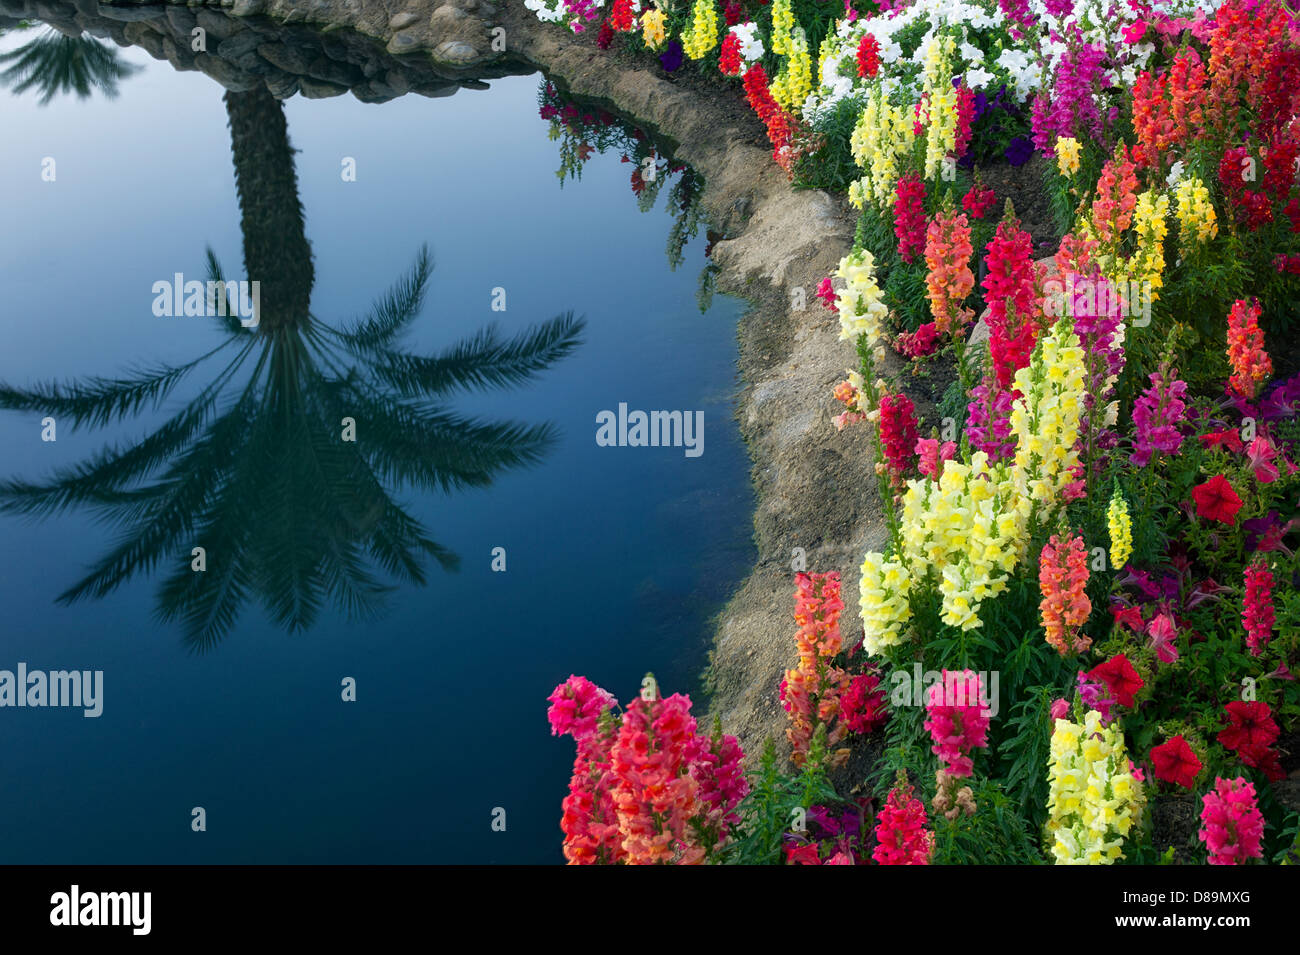 Garden flowers with palm tree reflection. Palm Desert, California - Stock Image